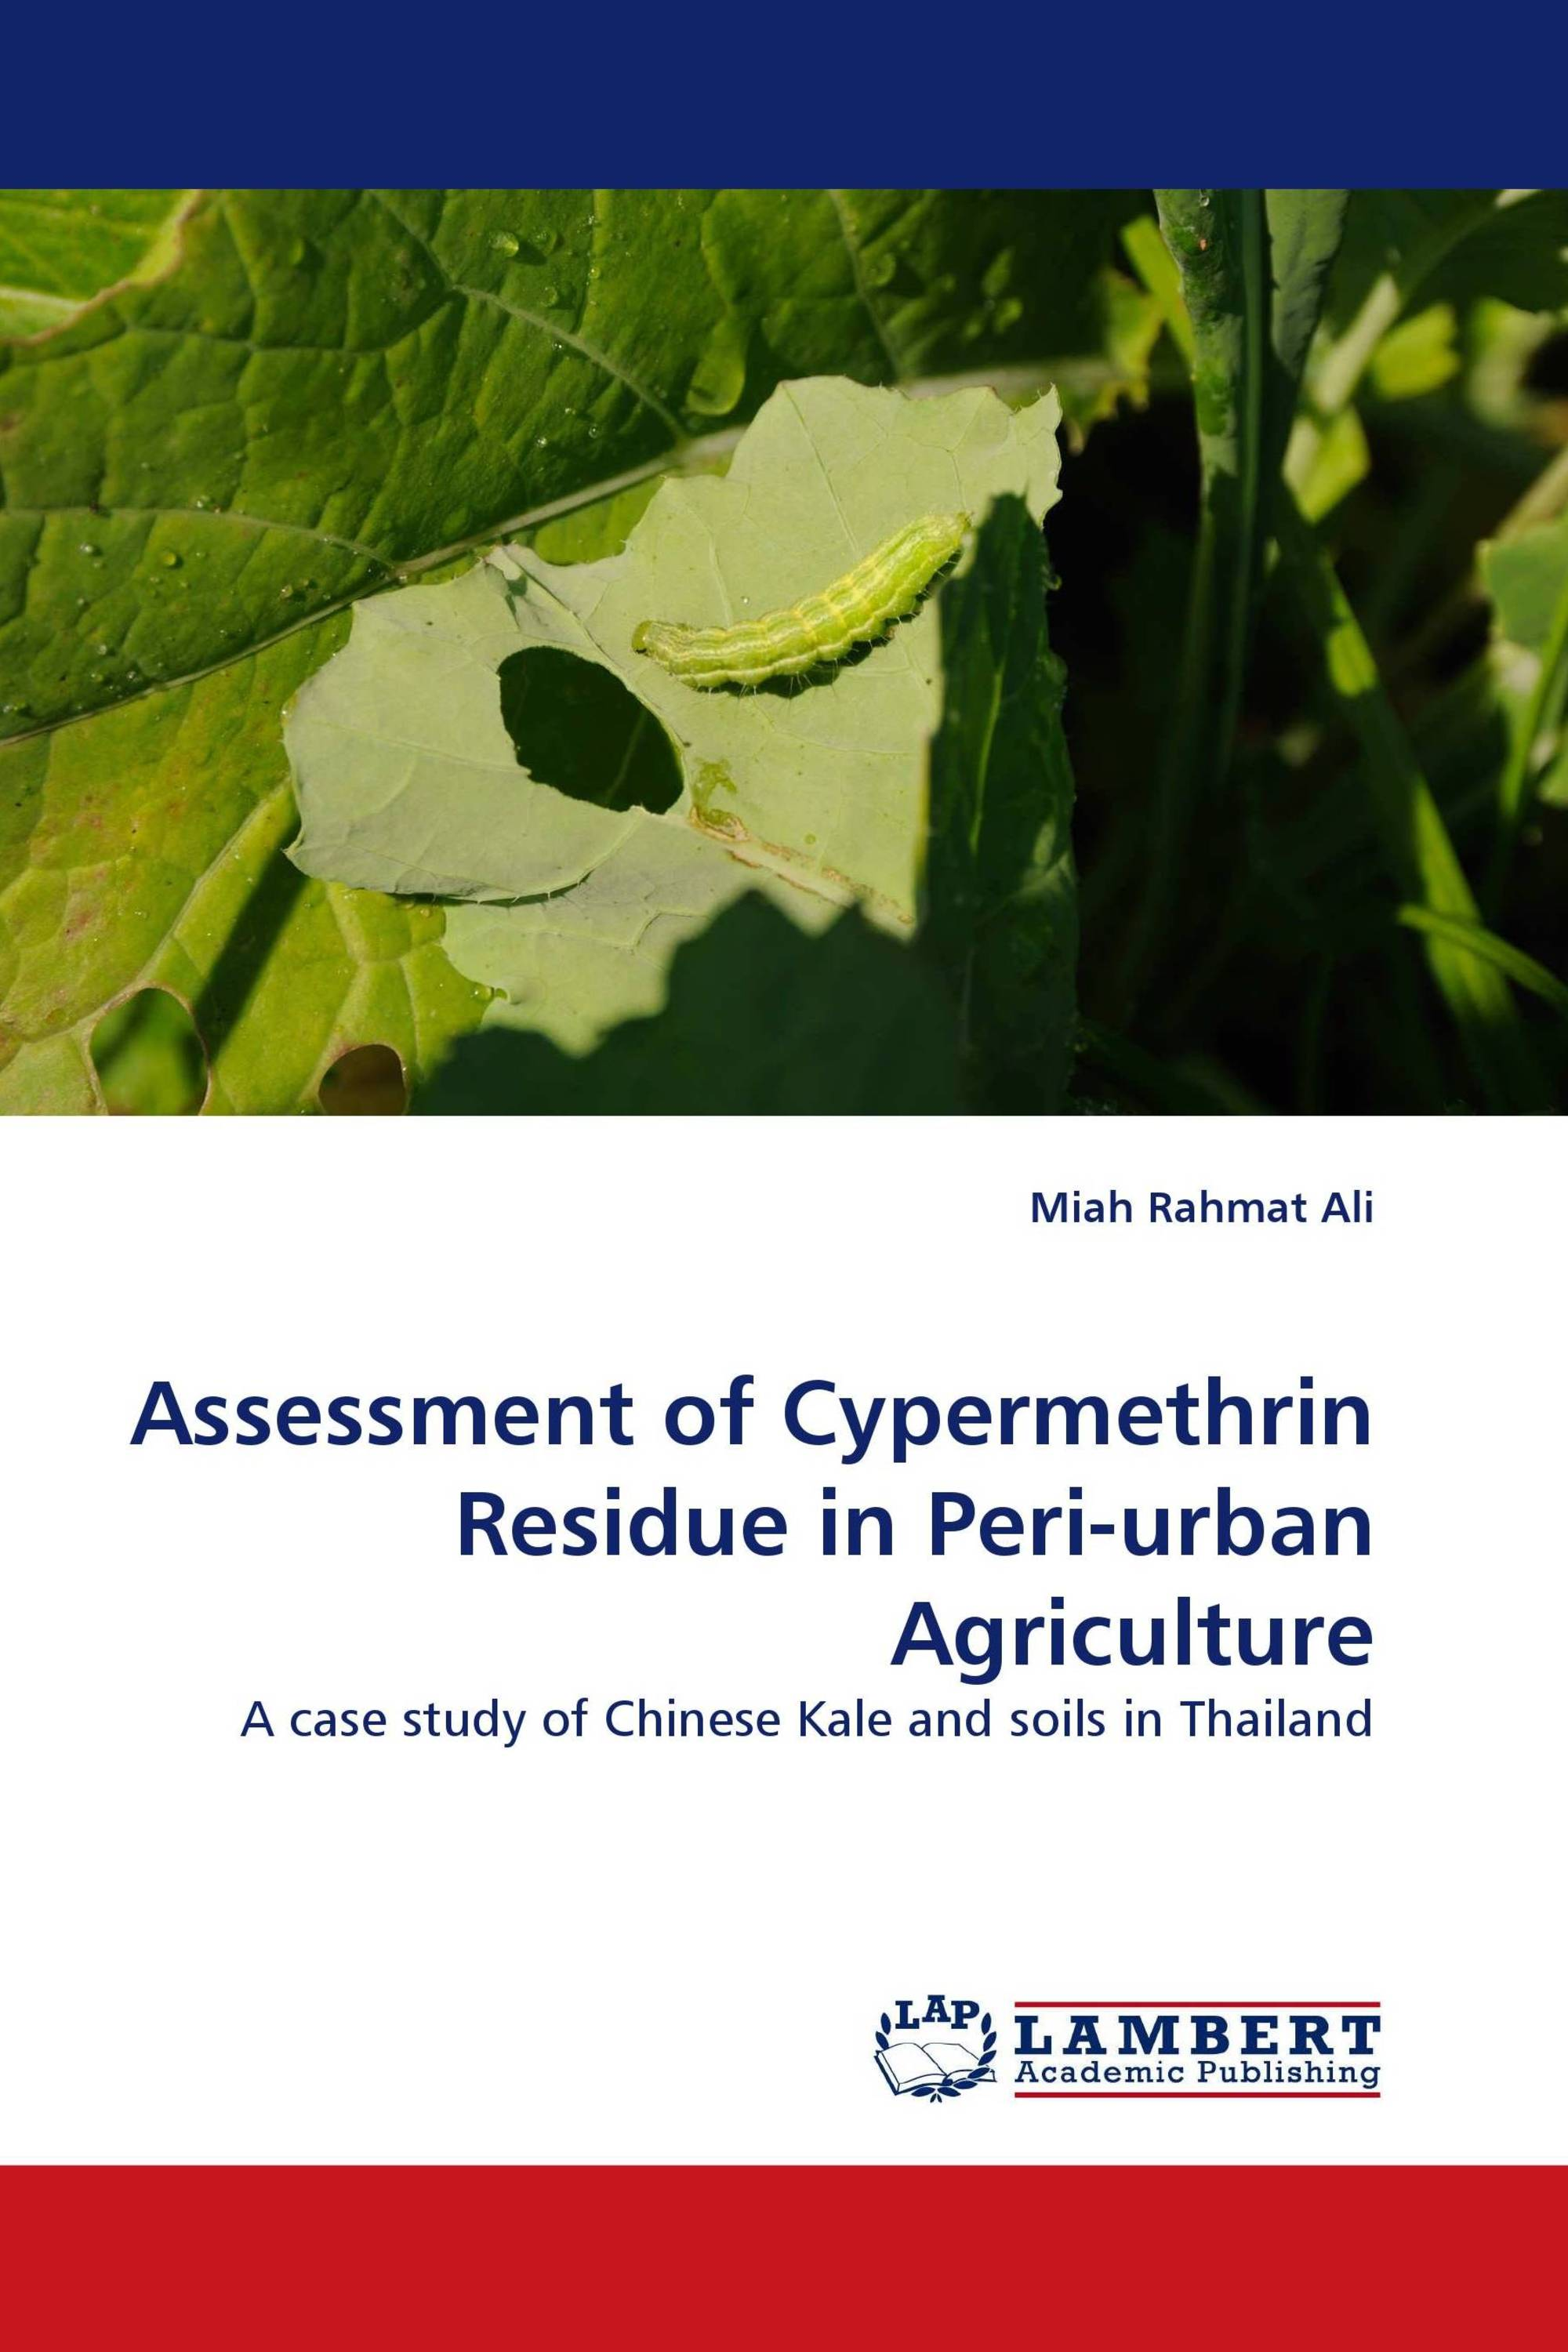 Assessment of Cypermethrin Residue in Peri-urban Agriculture